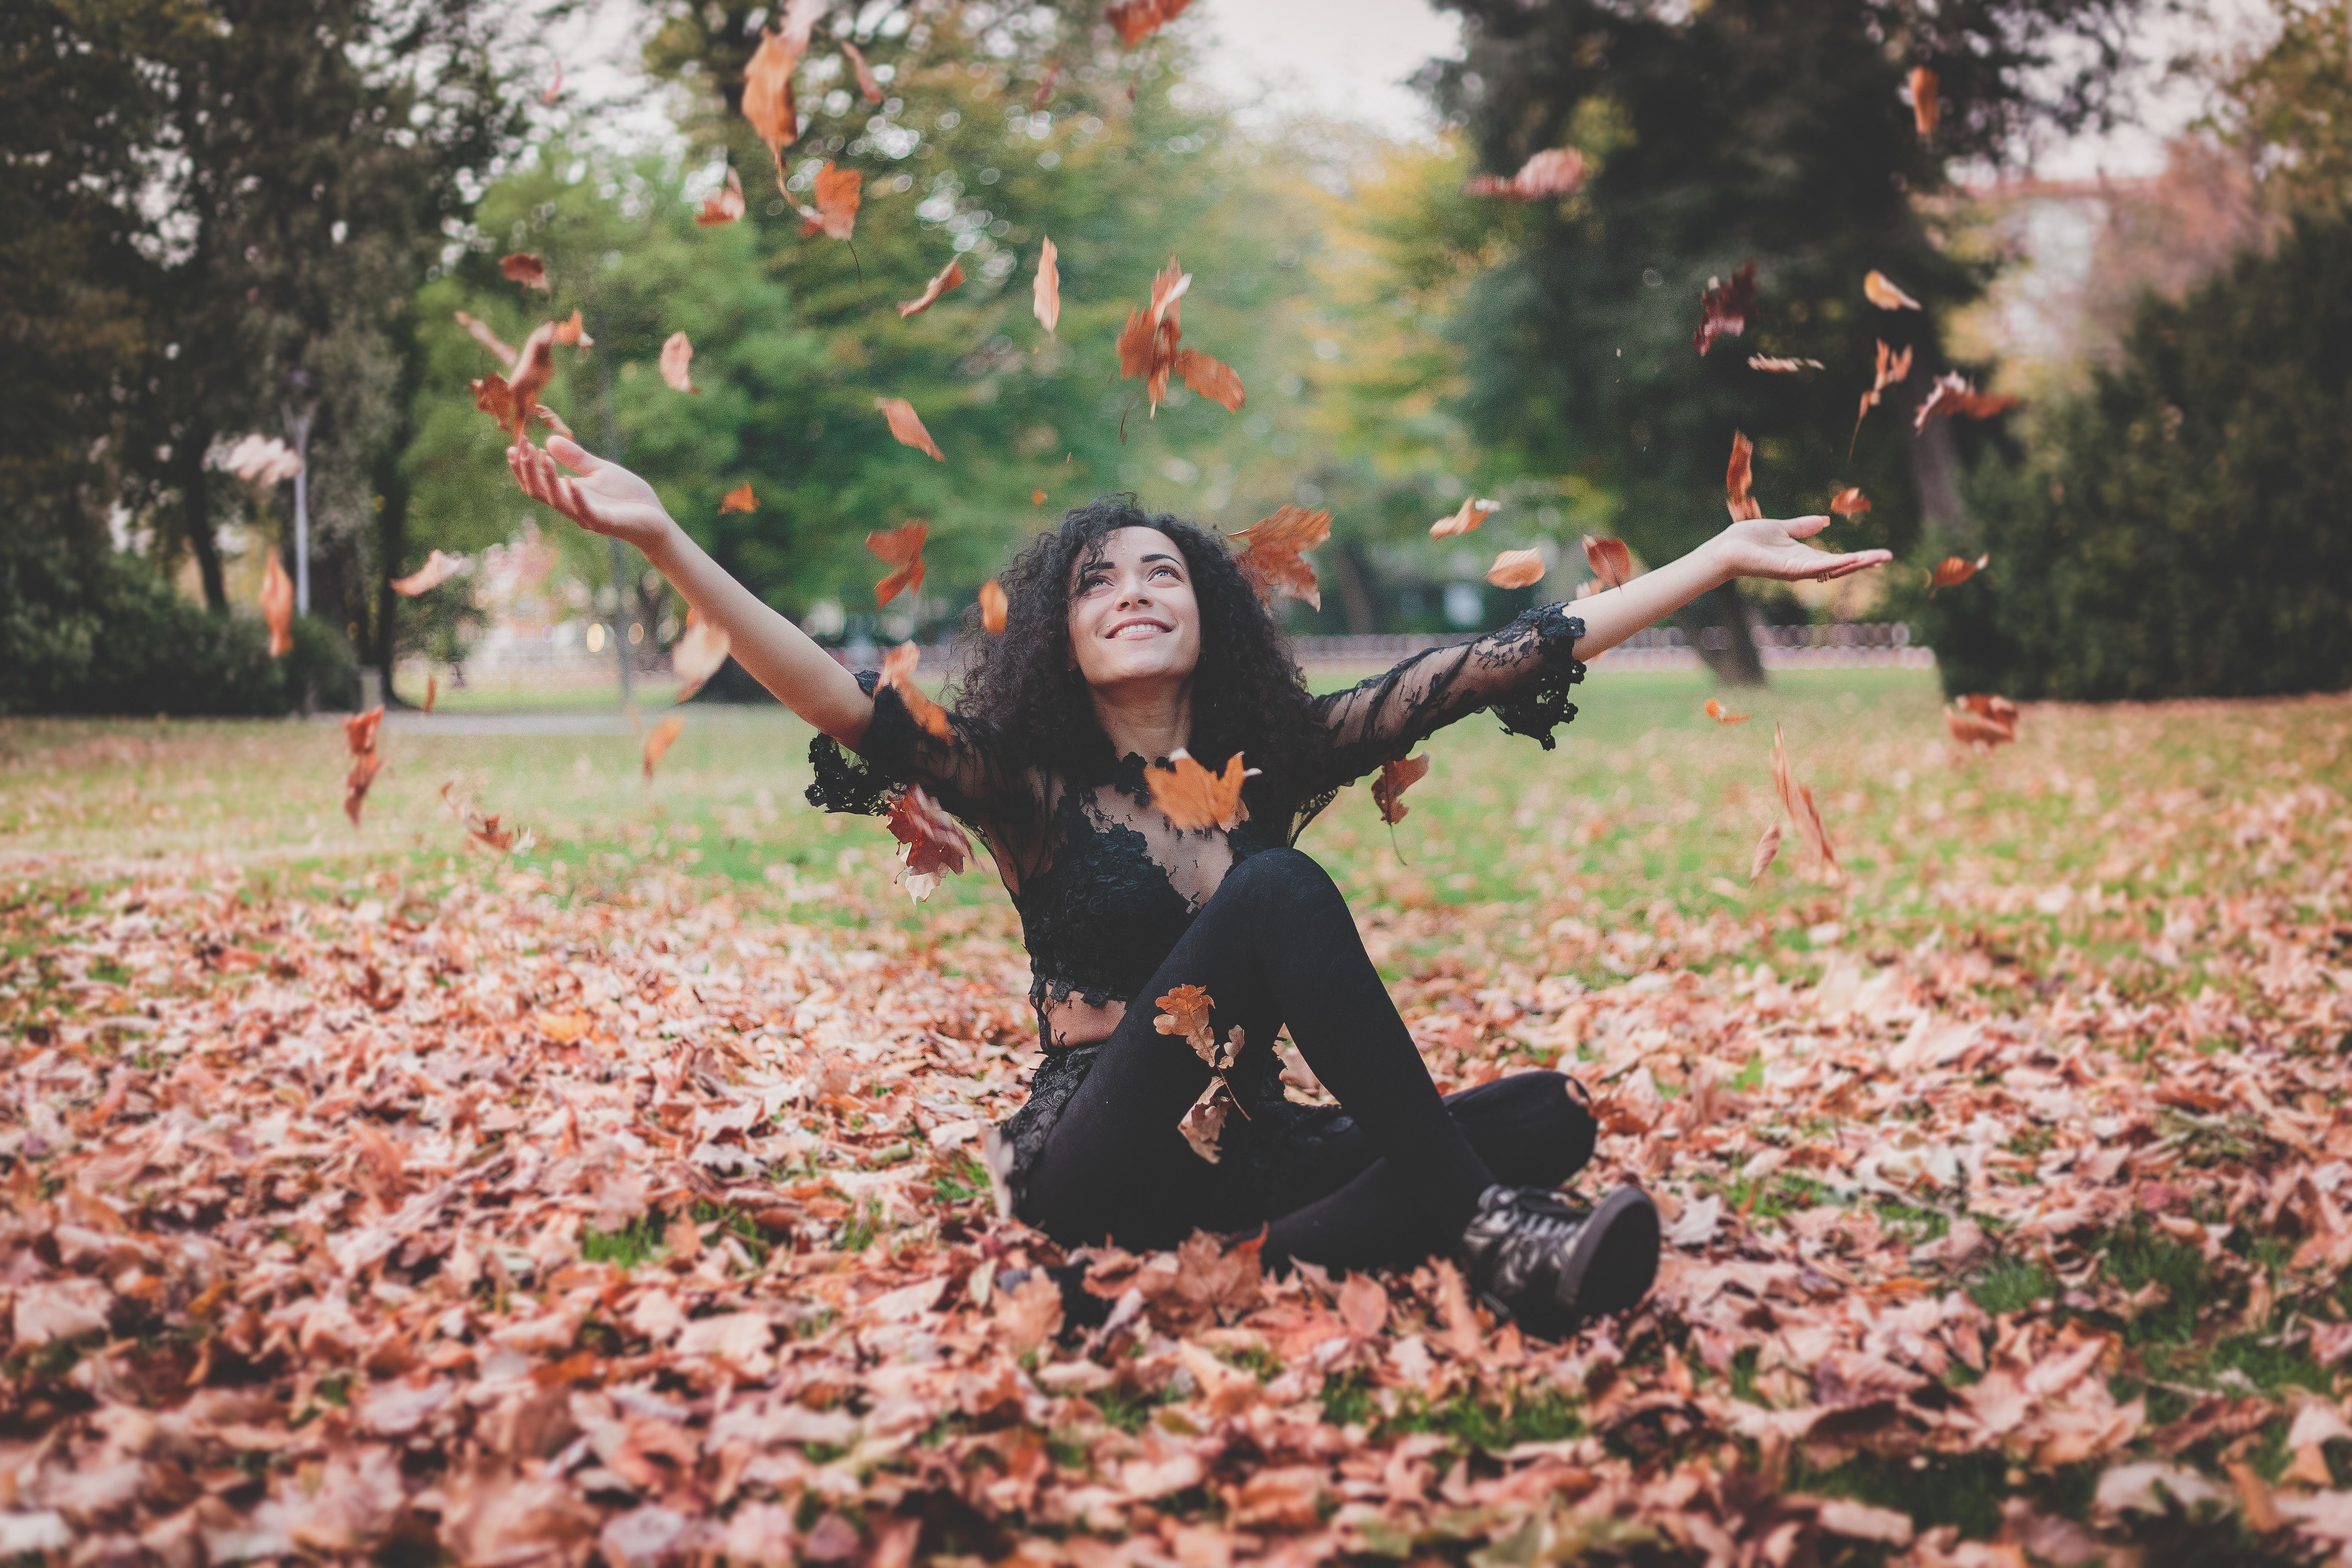 happy woman smiles while playing in a pile of leaves